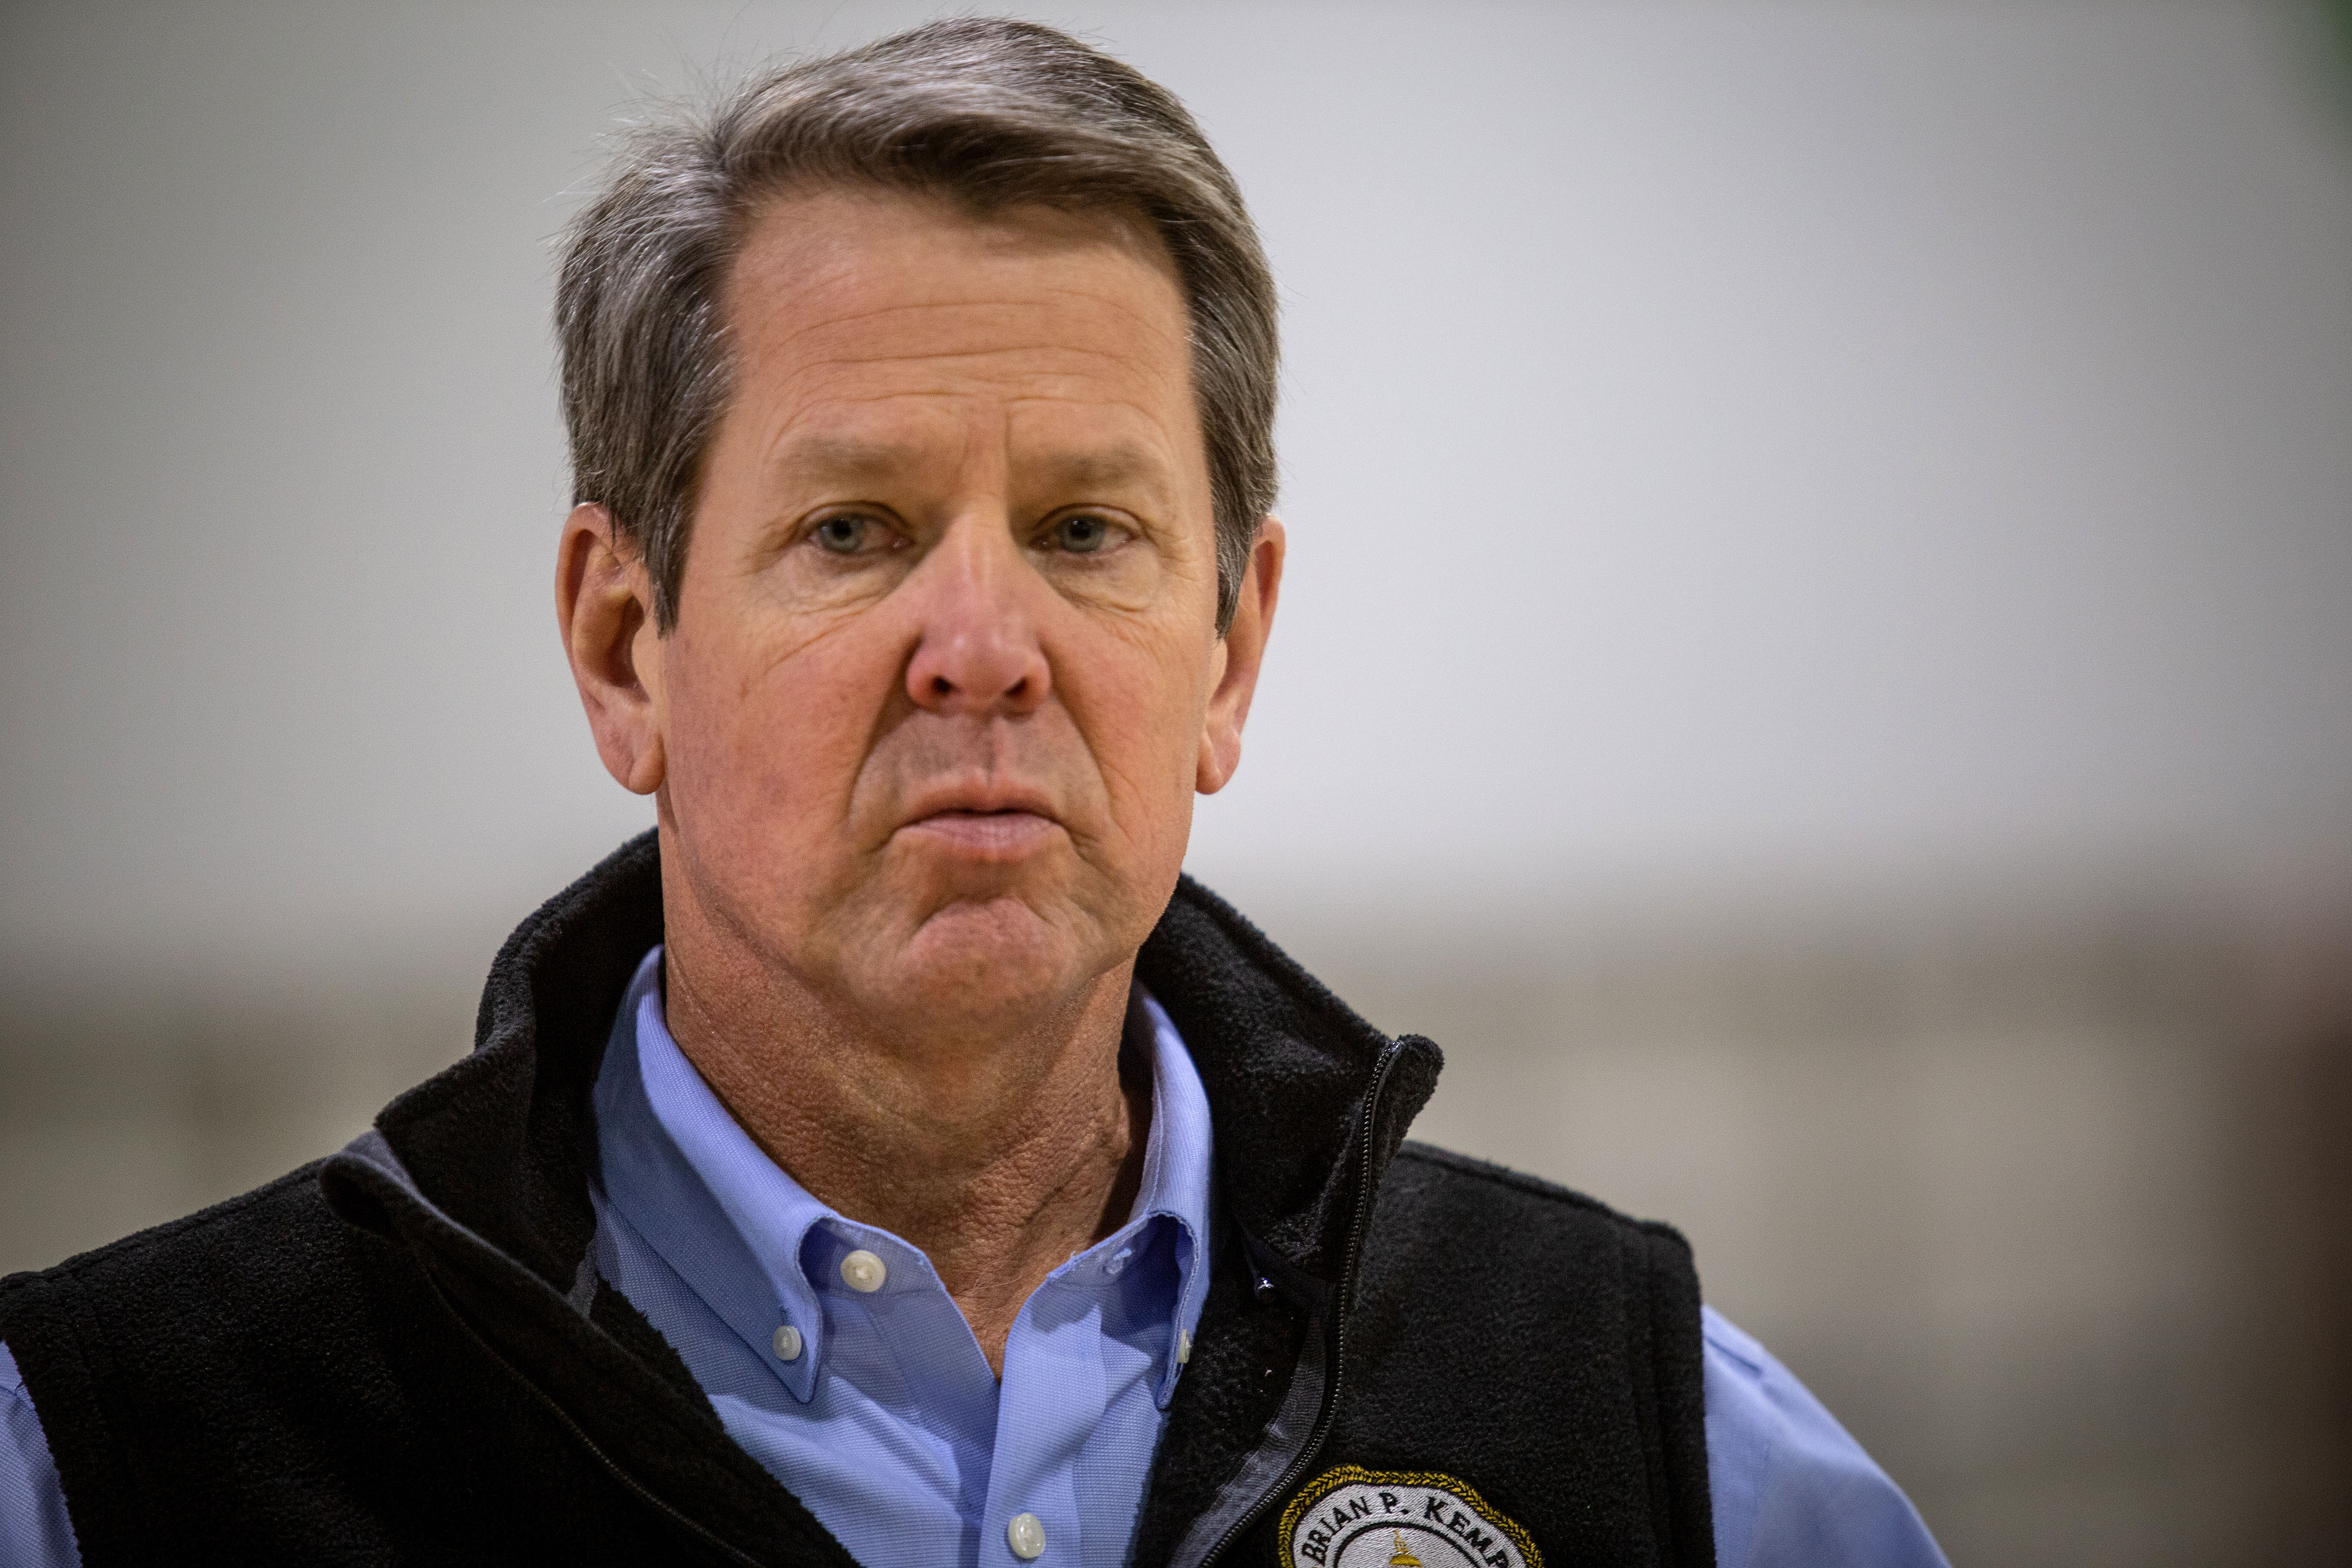 Georgia Gov. Brian Kemp listens to a question from the press during a tour of a temporary hospital at the Georgia World Congress Center in Atlanta on April 16.